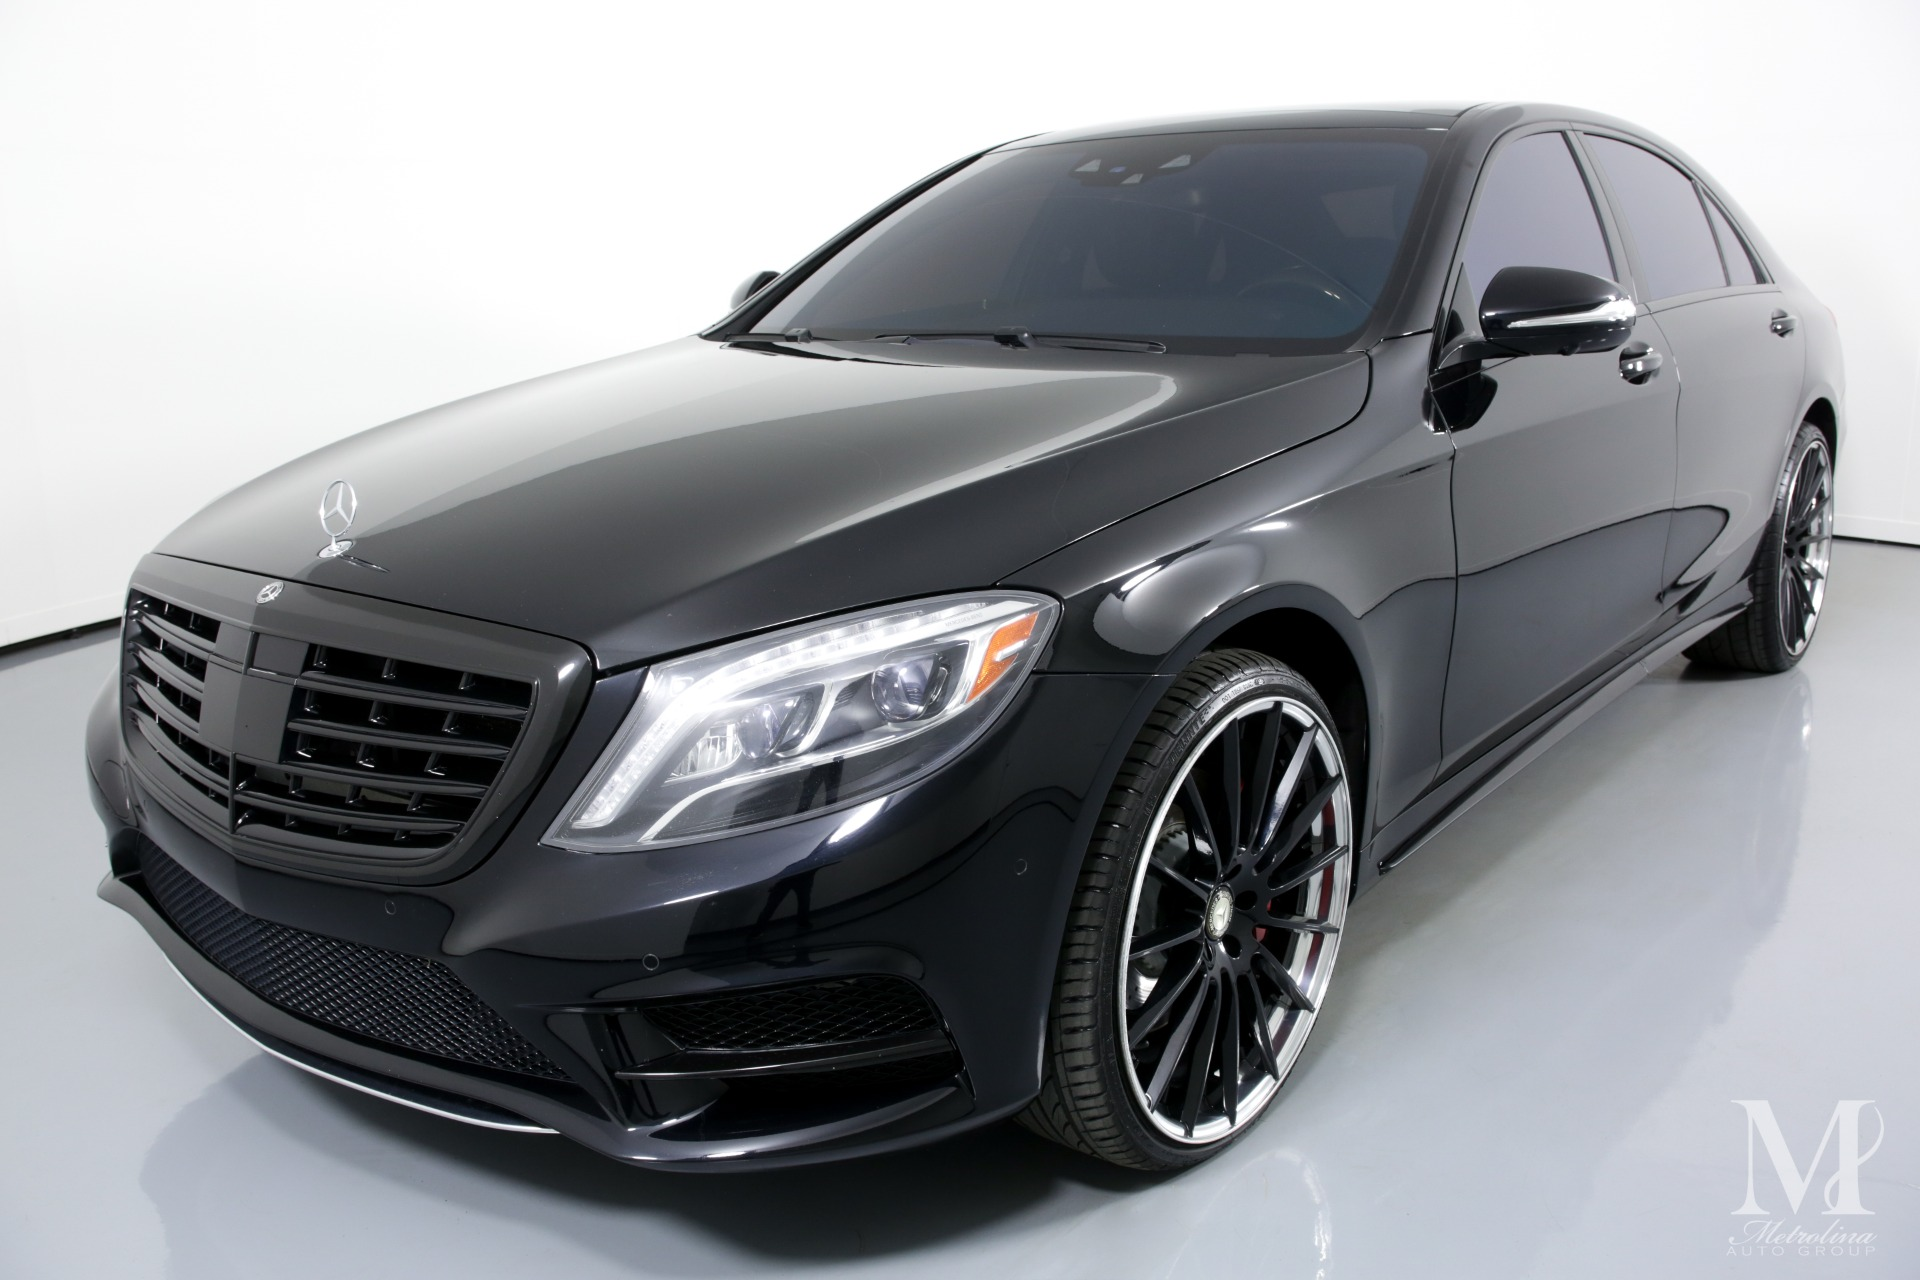 Used 2015 Mercedes-Benz S-Class S 550 for sale $42,996 at Metrolina Auto Group in Charlotte NC 28217 - 4